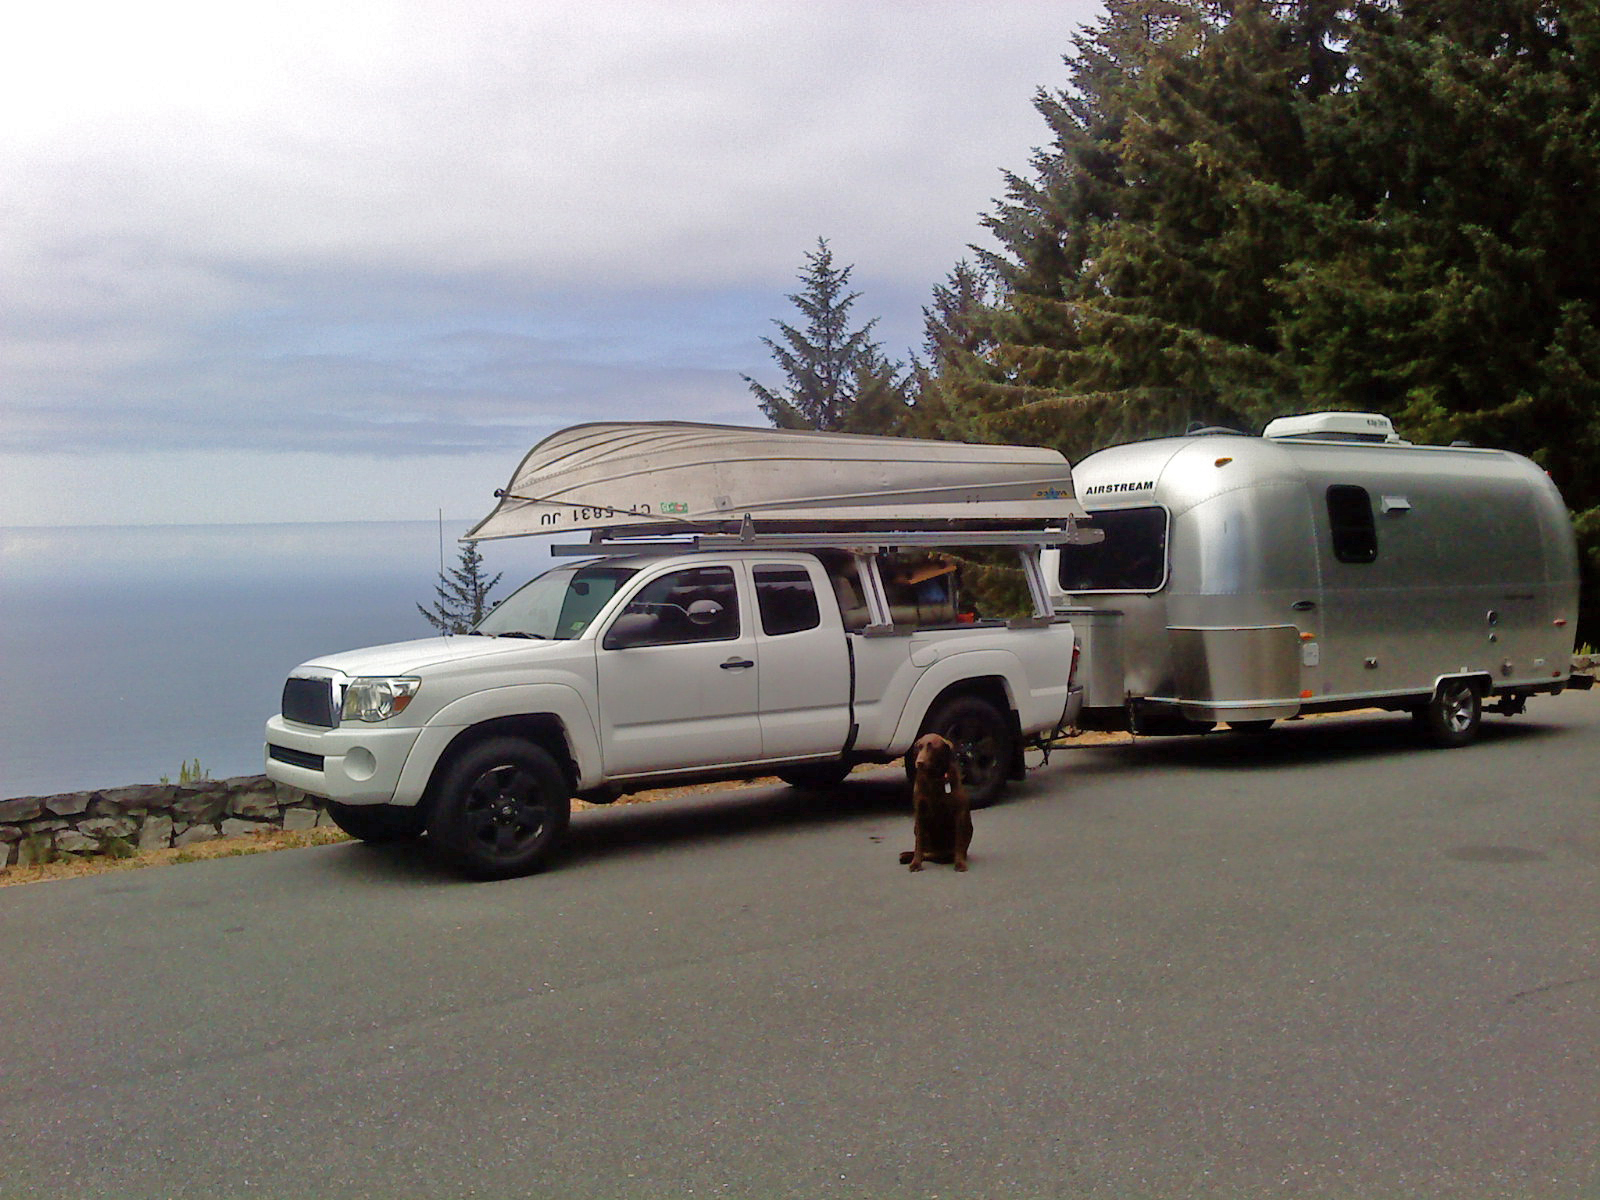 Click image for larger version  Name:airstreamtruckboat002.jpg Views:263 Size:1.05 MB ID:285653